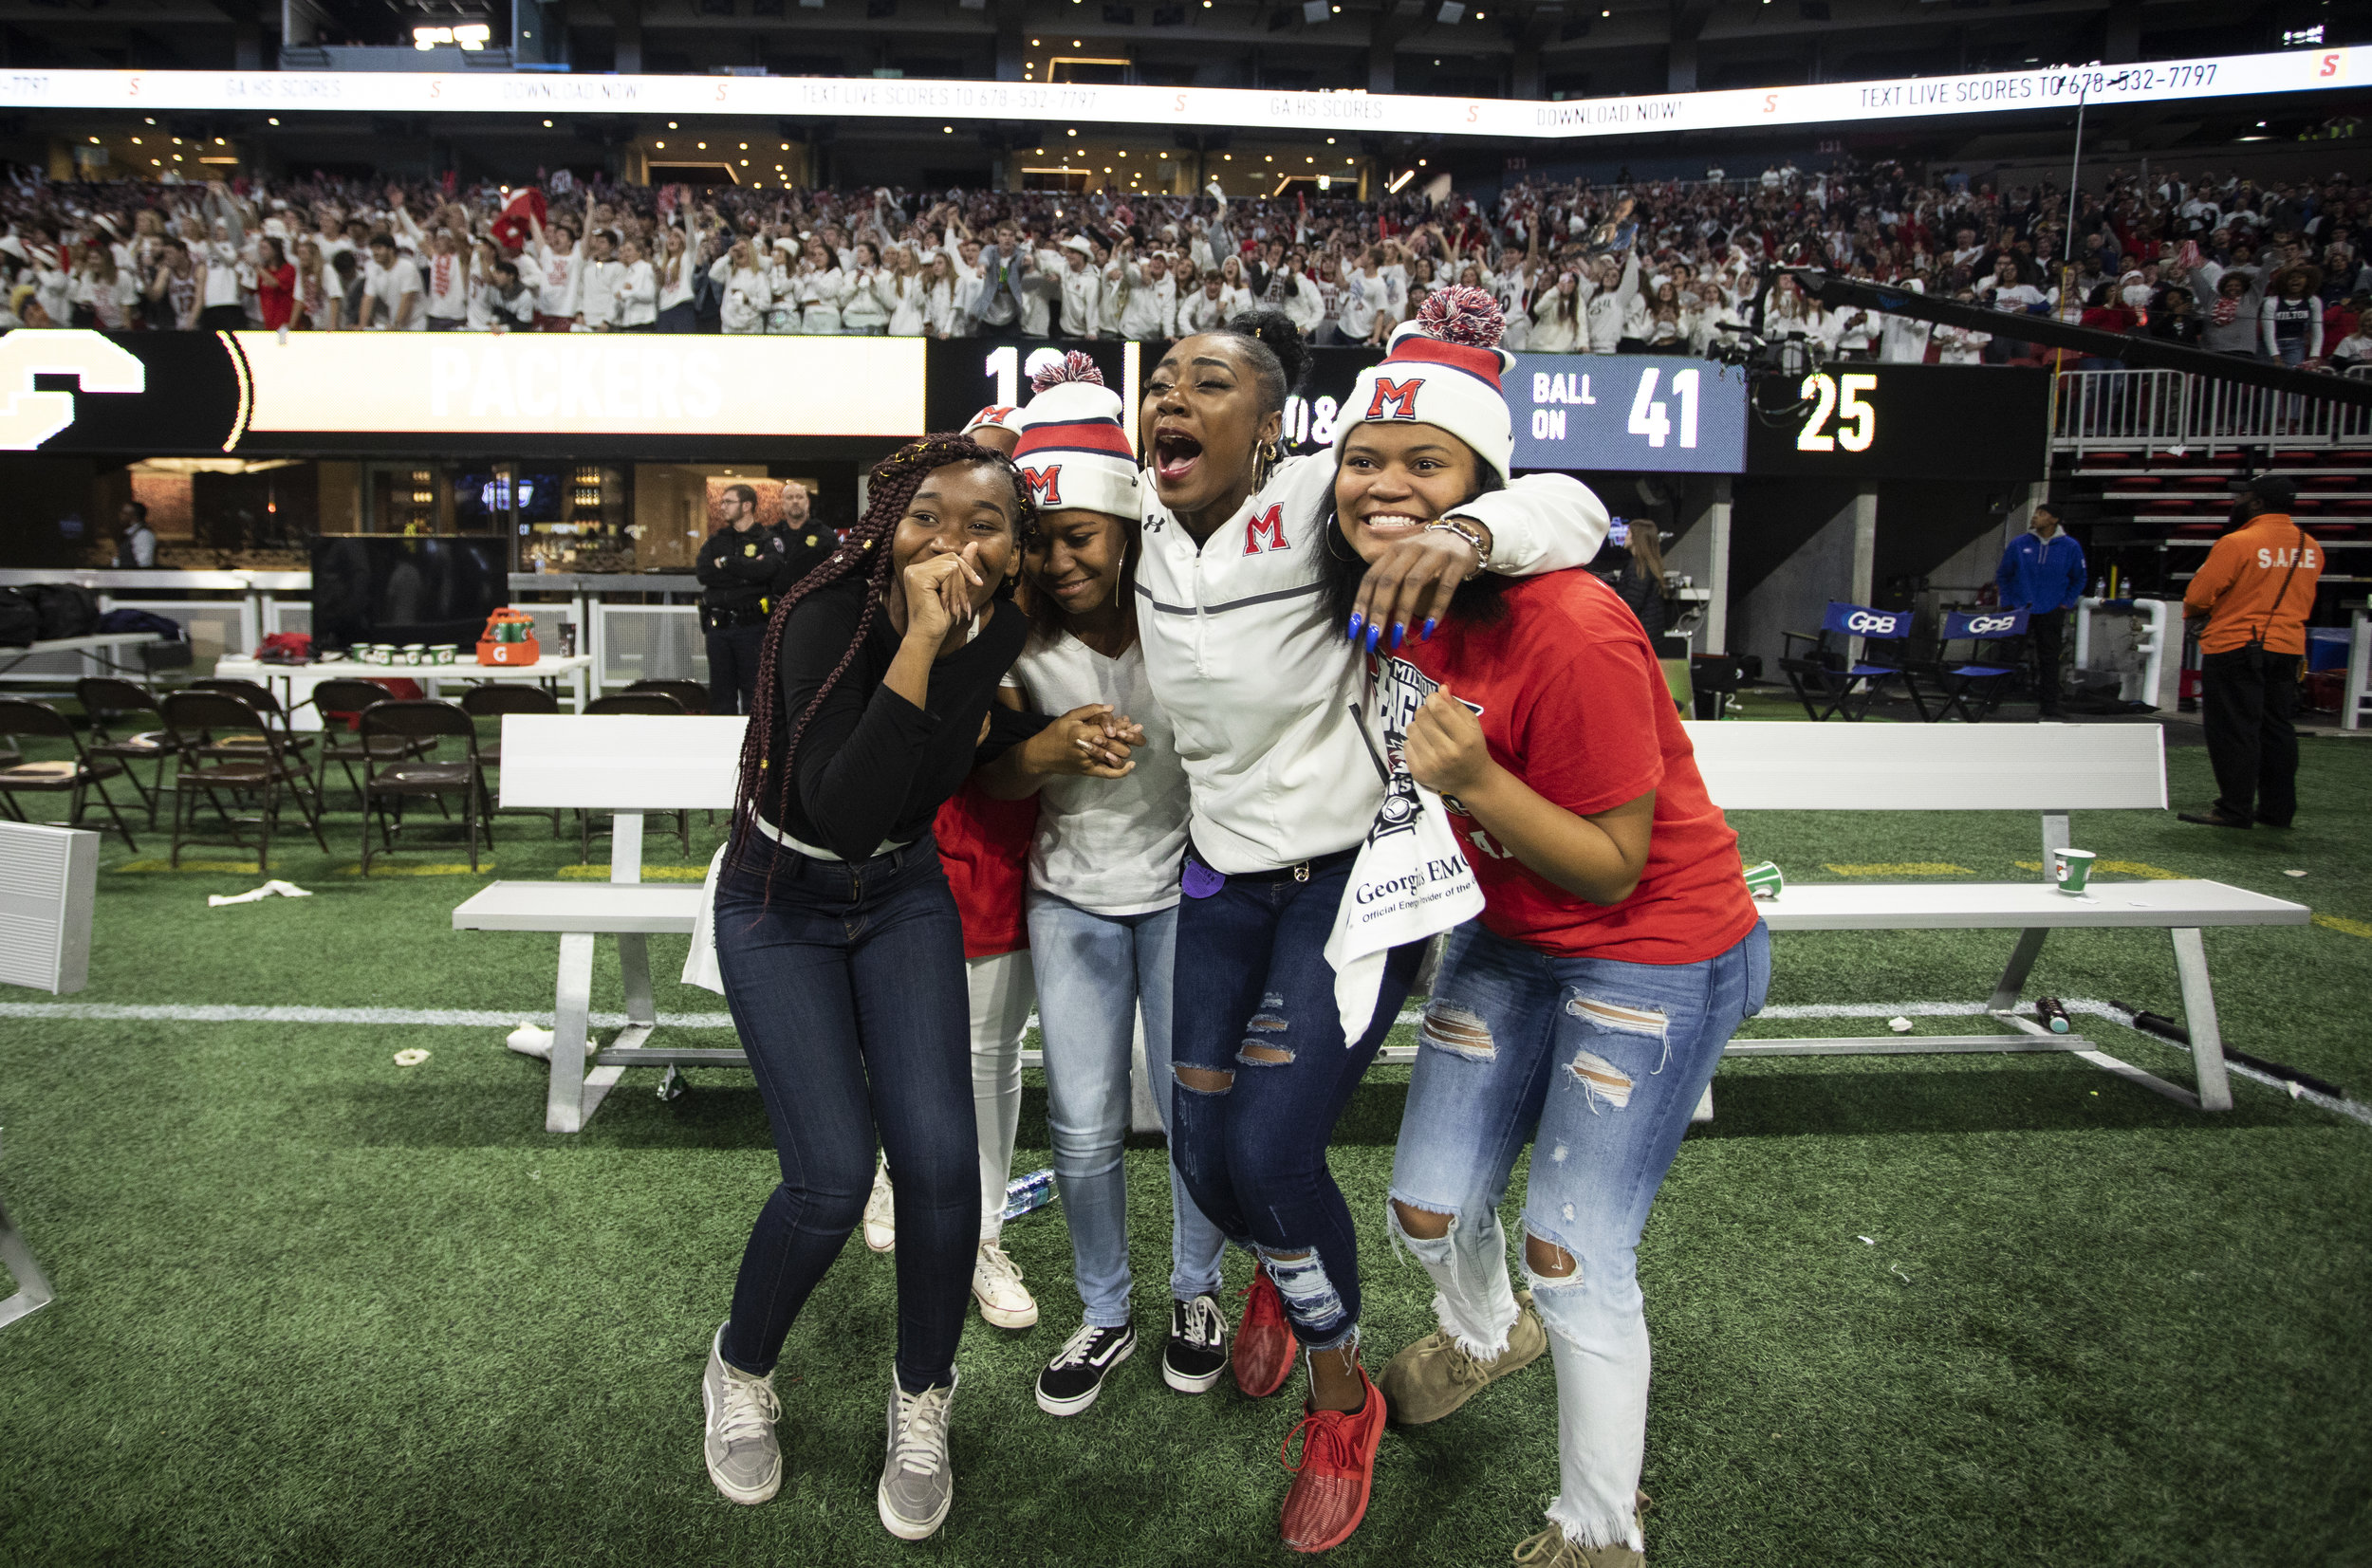 Milton High students are overwhelmed with excitement as time expires during the GHSA 7A State Championship game between the Milton Eagles and the Colquitt County Packers at Mercedes-Benz Stadium in Atlanta, Georgia, on Wednesday, December 12, 2018. The Eagles took down the Packers 14-13 to claim their first state championship title.